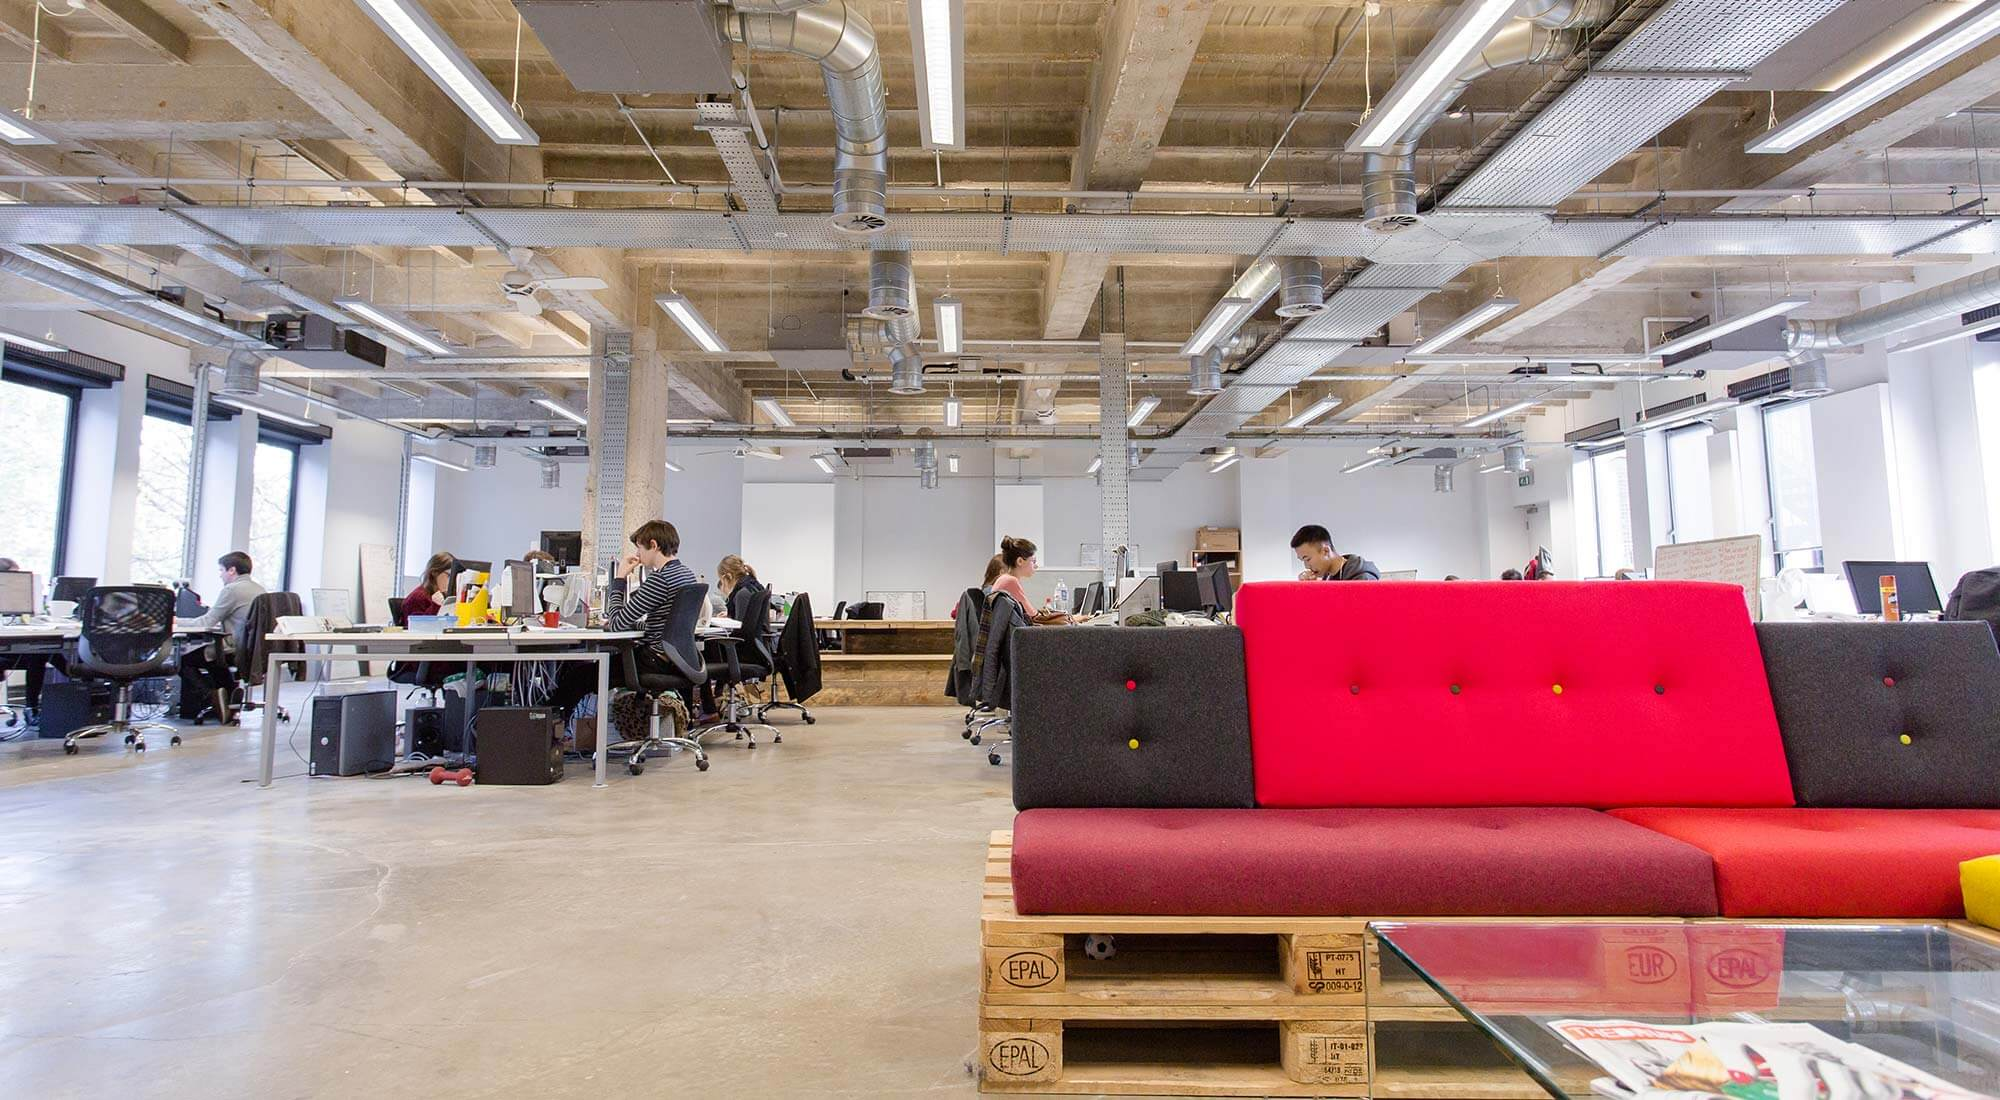 Workplace design and interiors